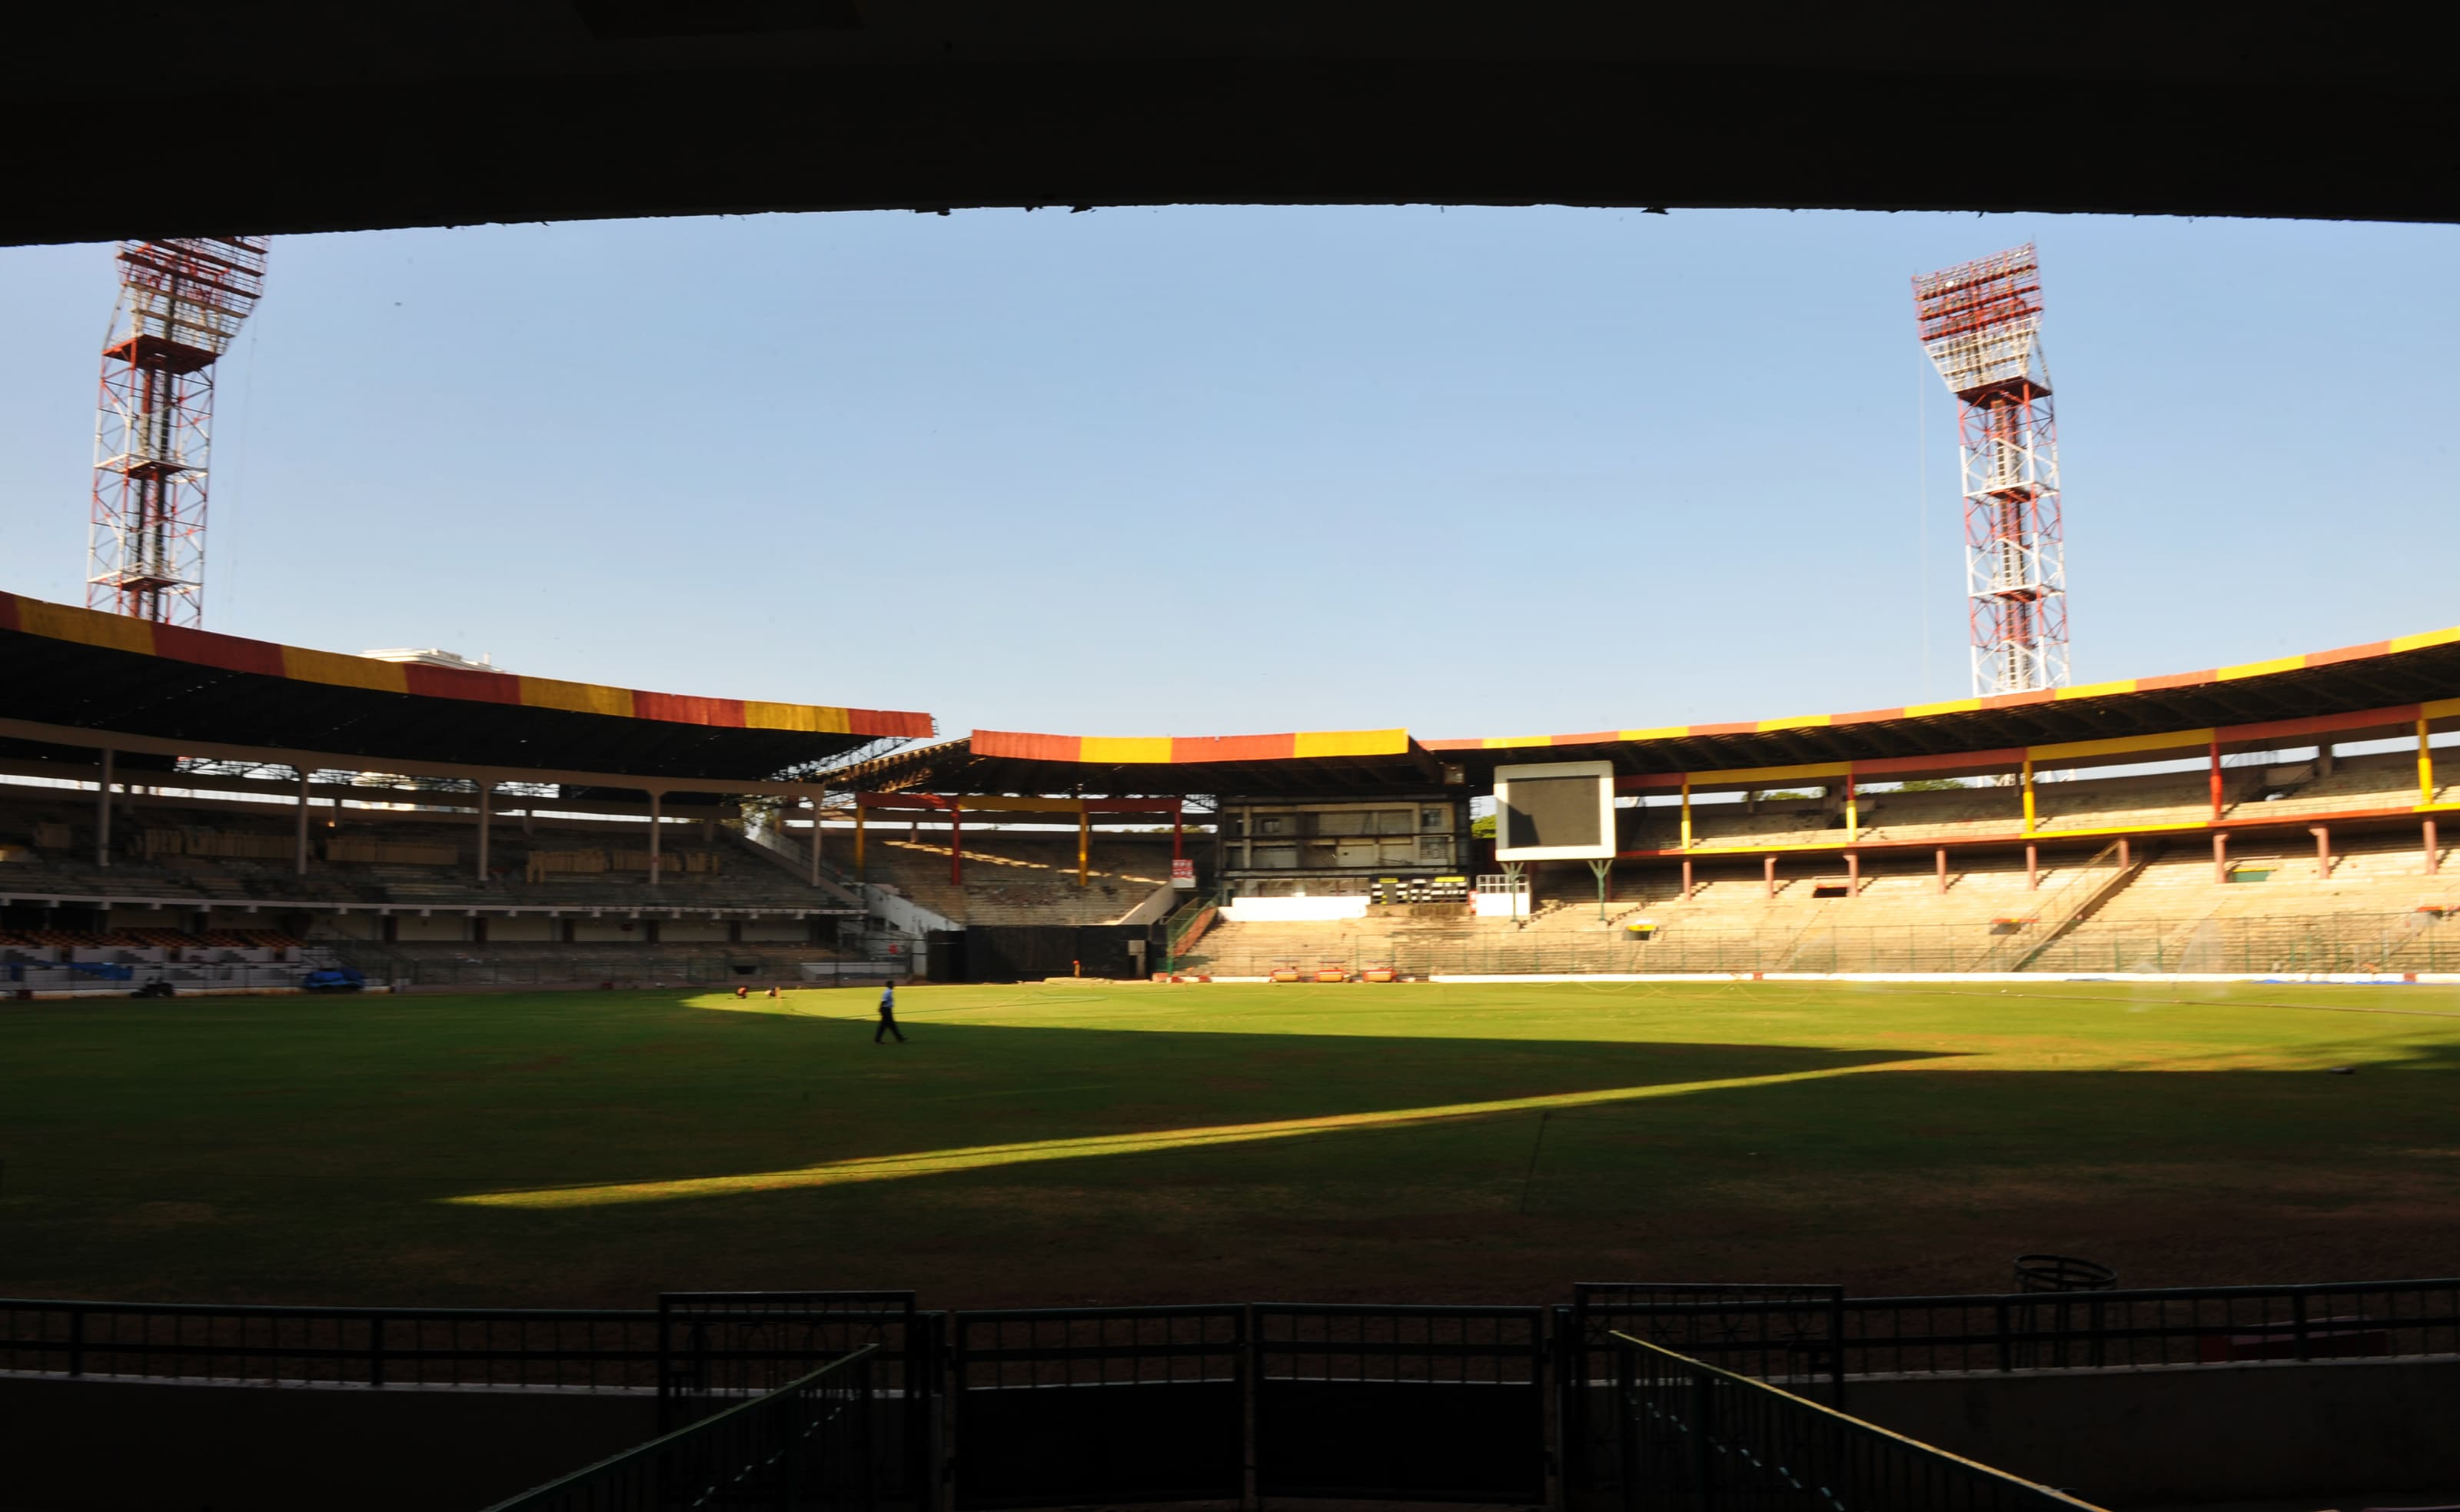 M.Chinnaswamy Stadium, Bengaluru